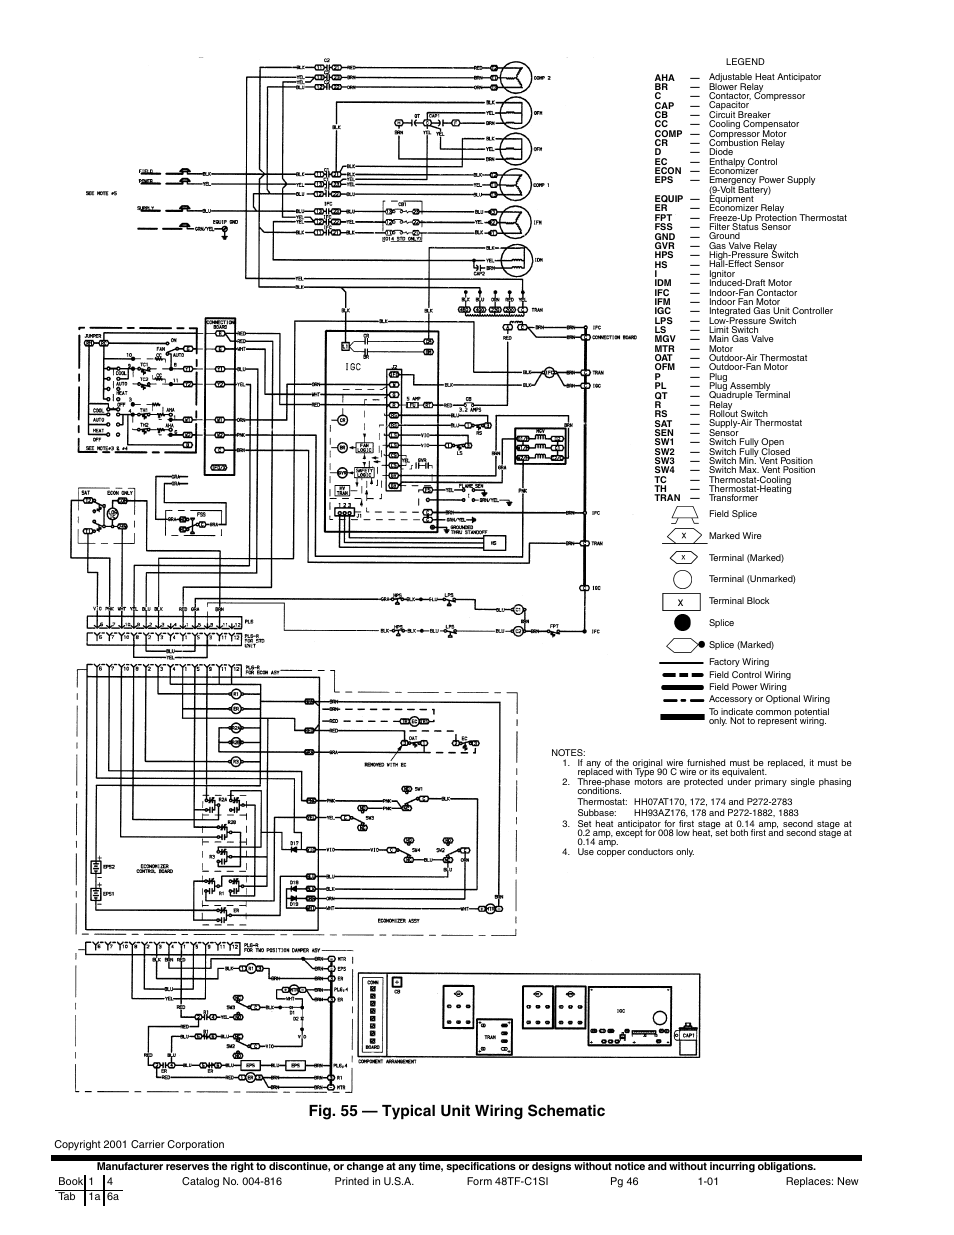 Wiring Diagram For Baler Free Download Wiring Diagram Schematic